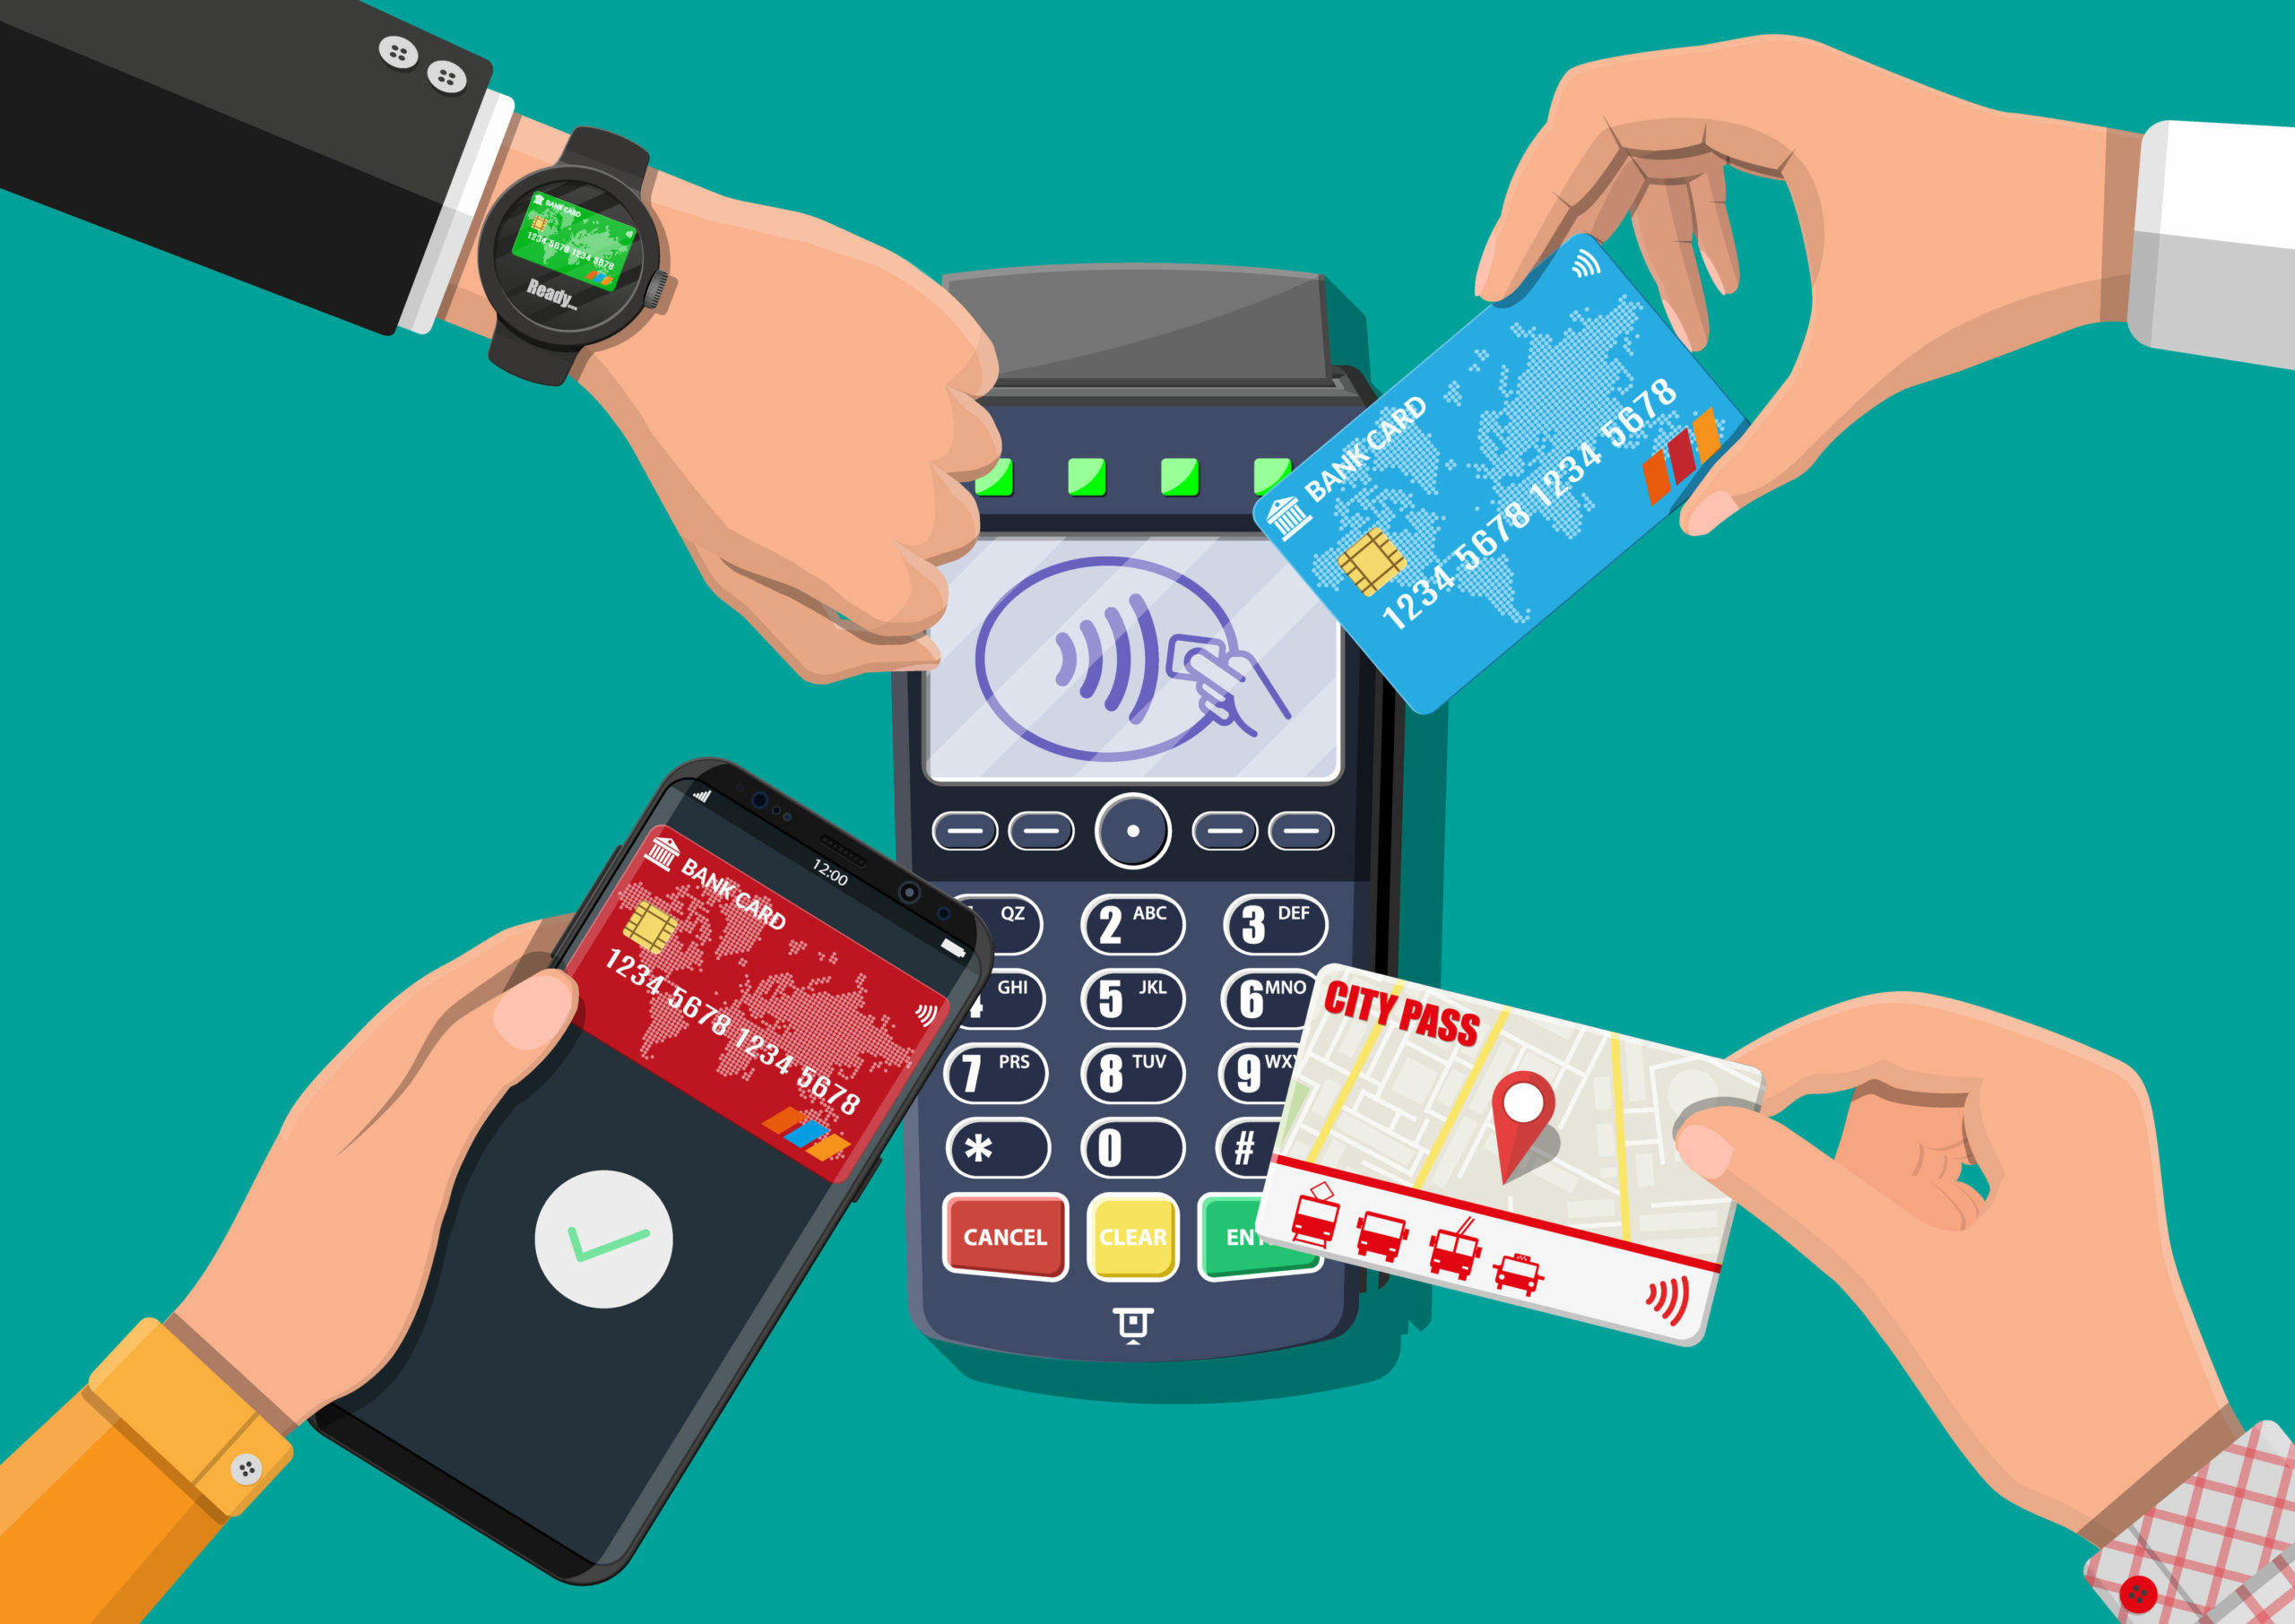 How to optimise cash flow with cashless payments